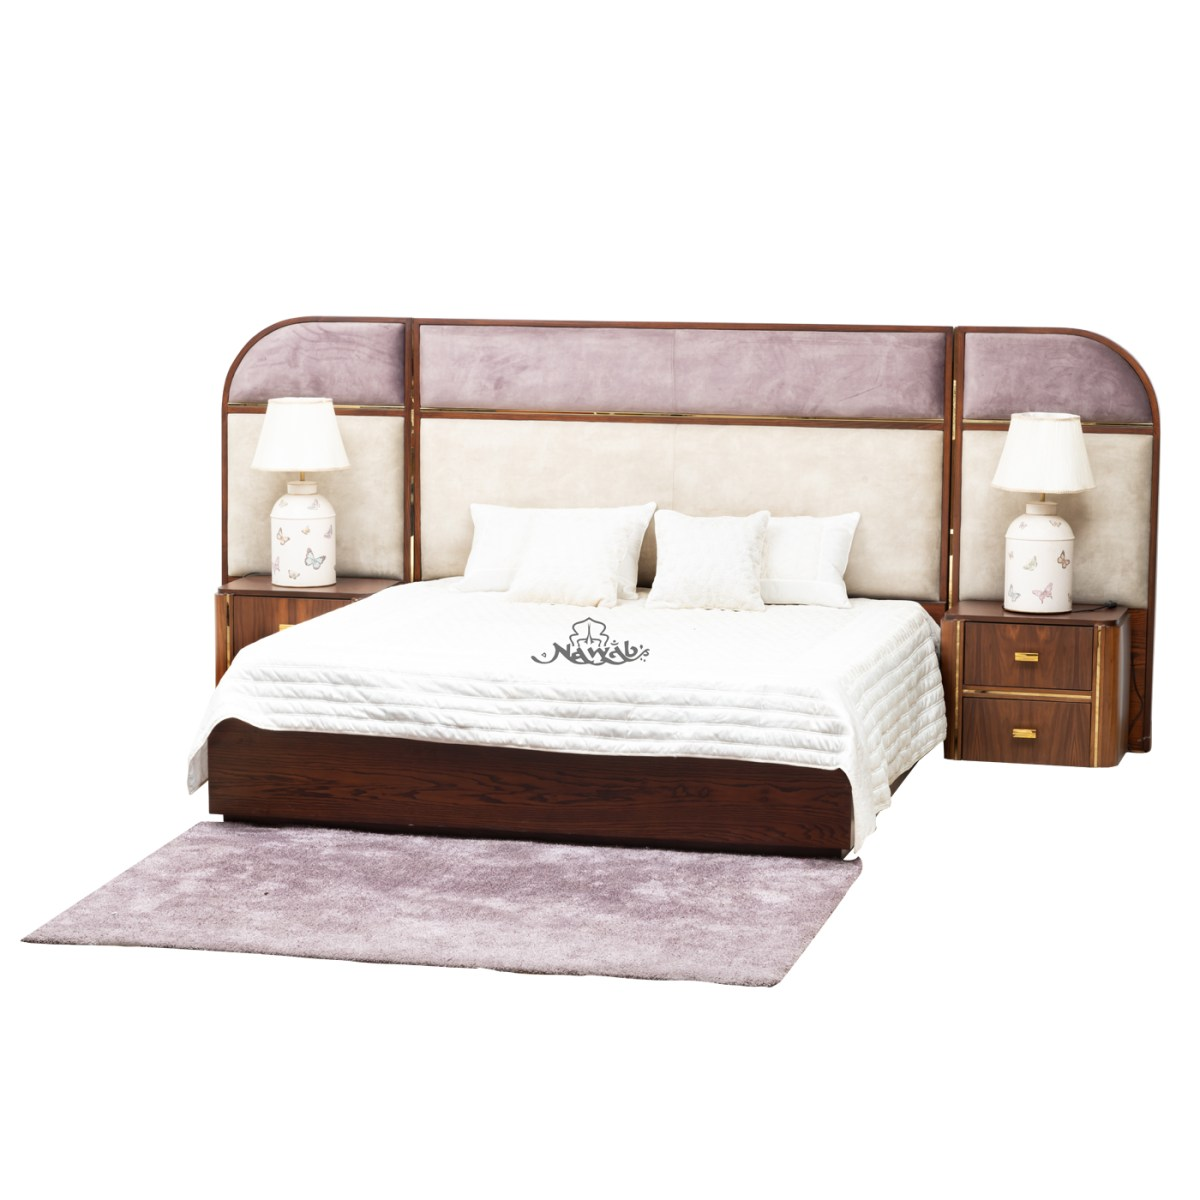 rosewood-grained-veneer-brass-strips-brass-handles-suede-upholstery-laminated-inside-hydraulic-bed--Chanel-pull-out-drawers